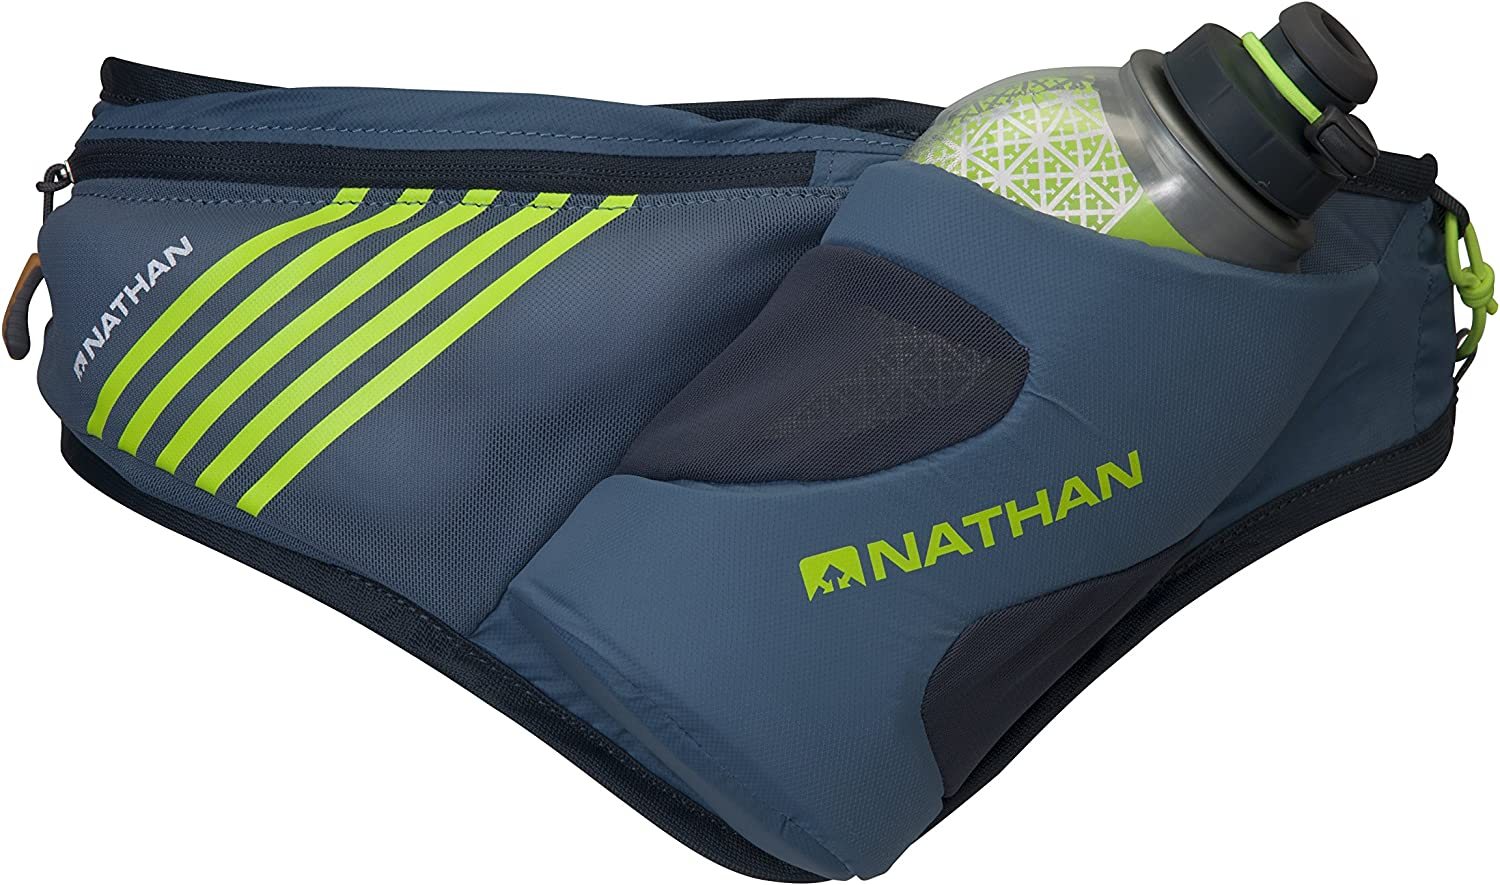 Nathan Peak Insulated Waist Pack